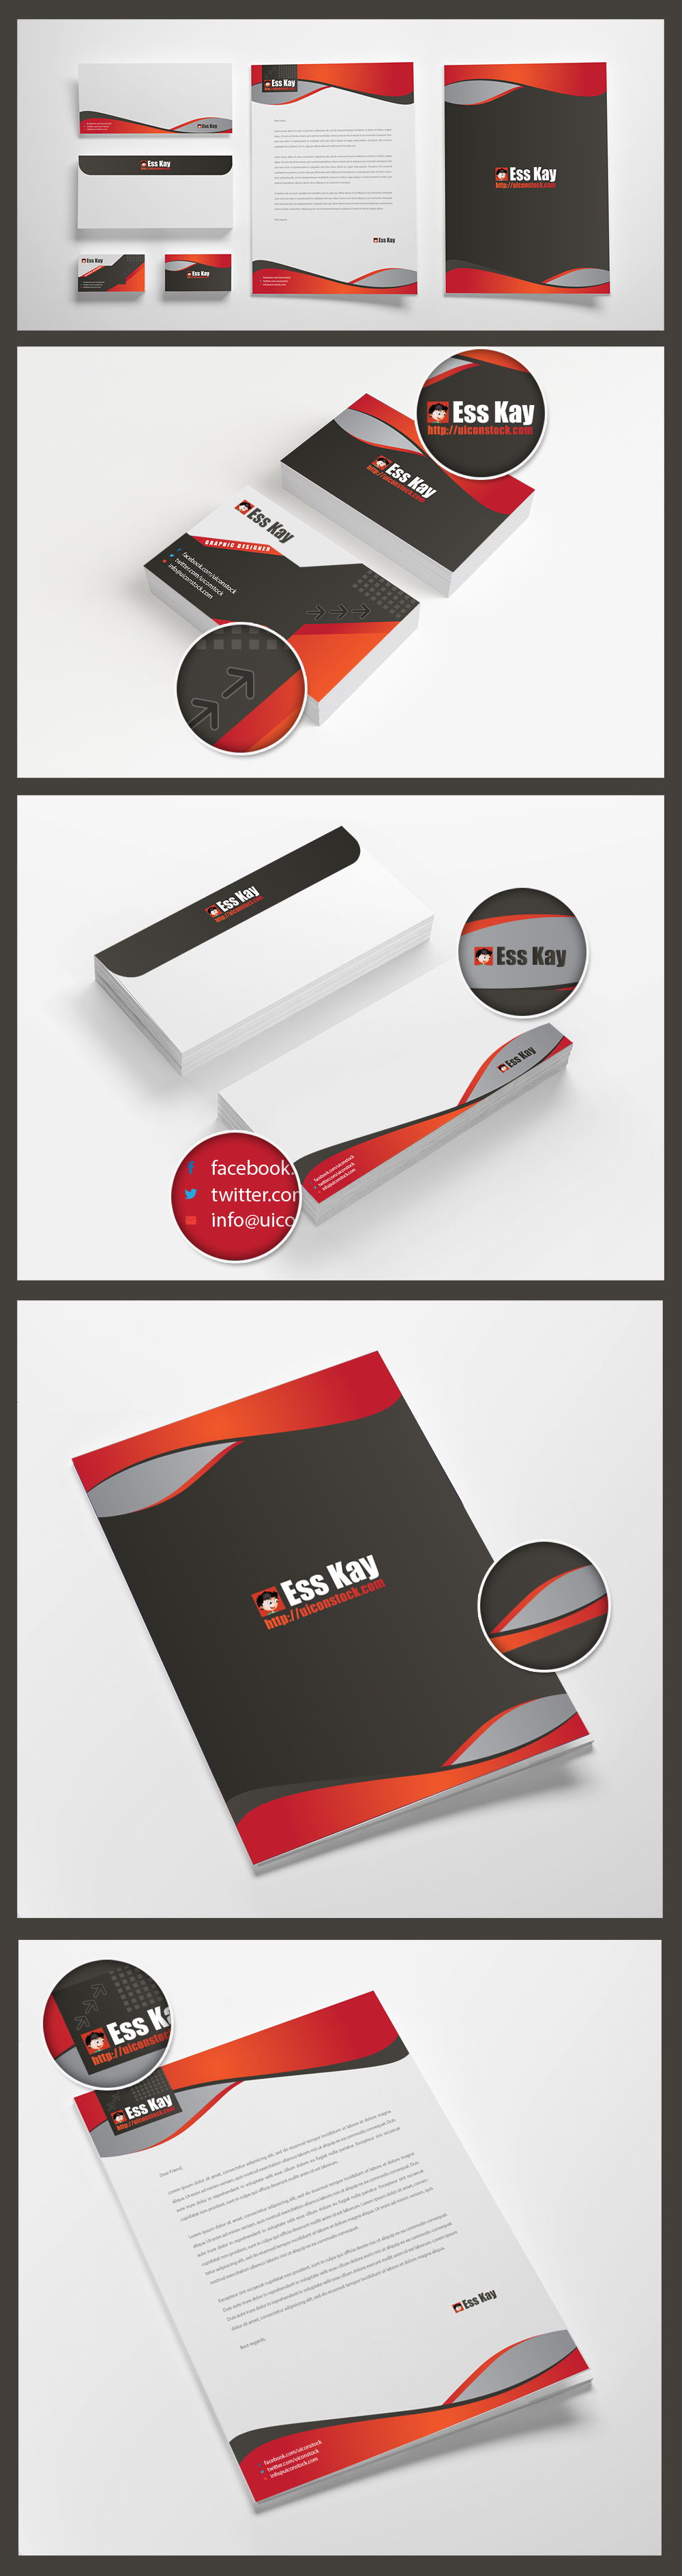 free-professional-stationary-design-graphic-designers-2014 (2)